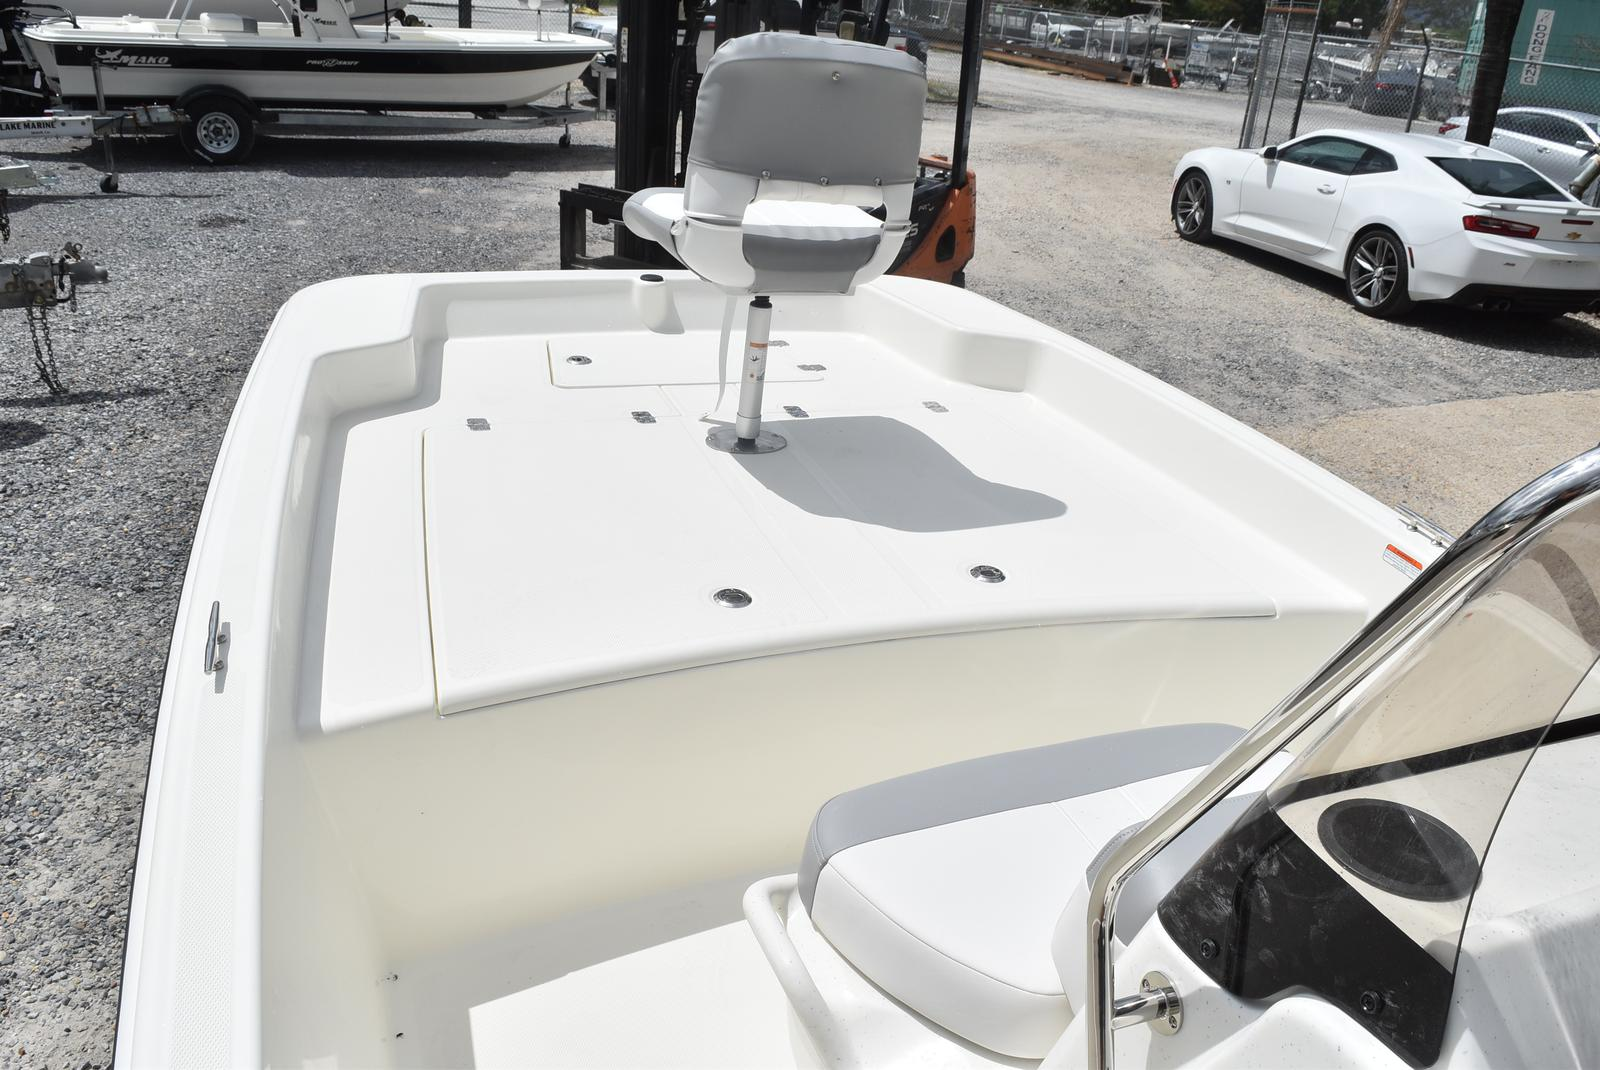 2020 Mako boat for sale, model of the boat is Pro Skiff 17, 75 ELPT & Image # 395 of 702